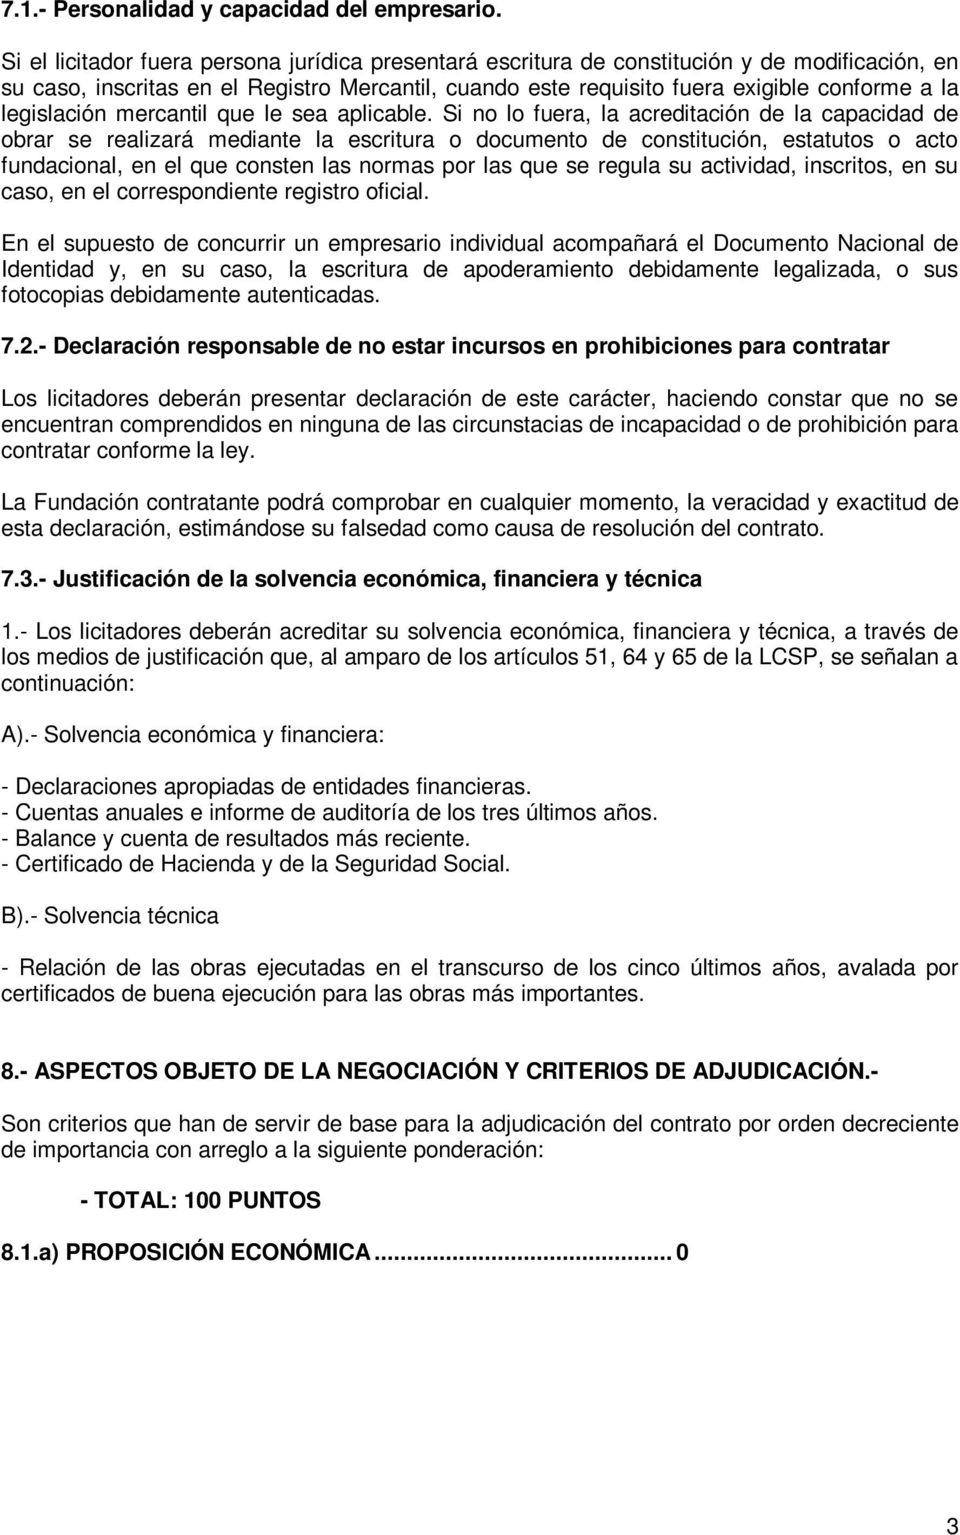 legislación mercantil que le sea aplicable.